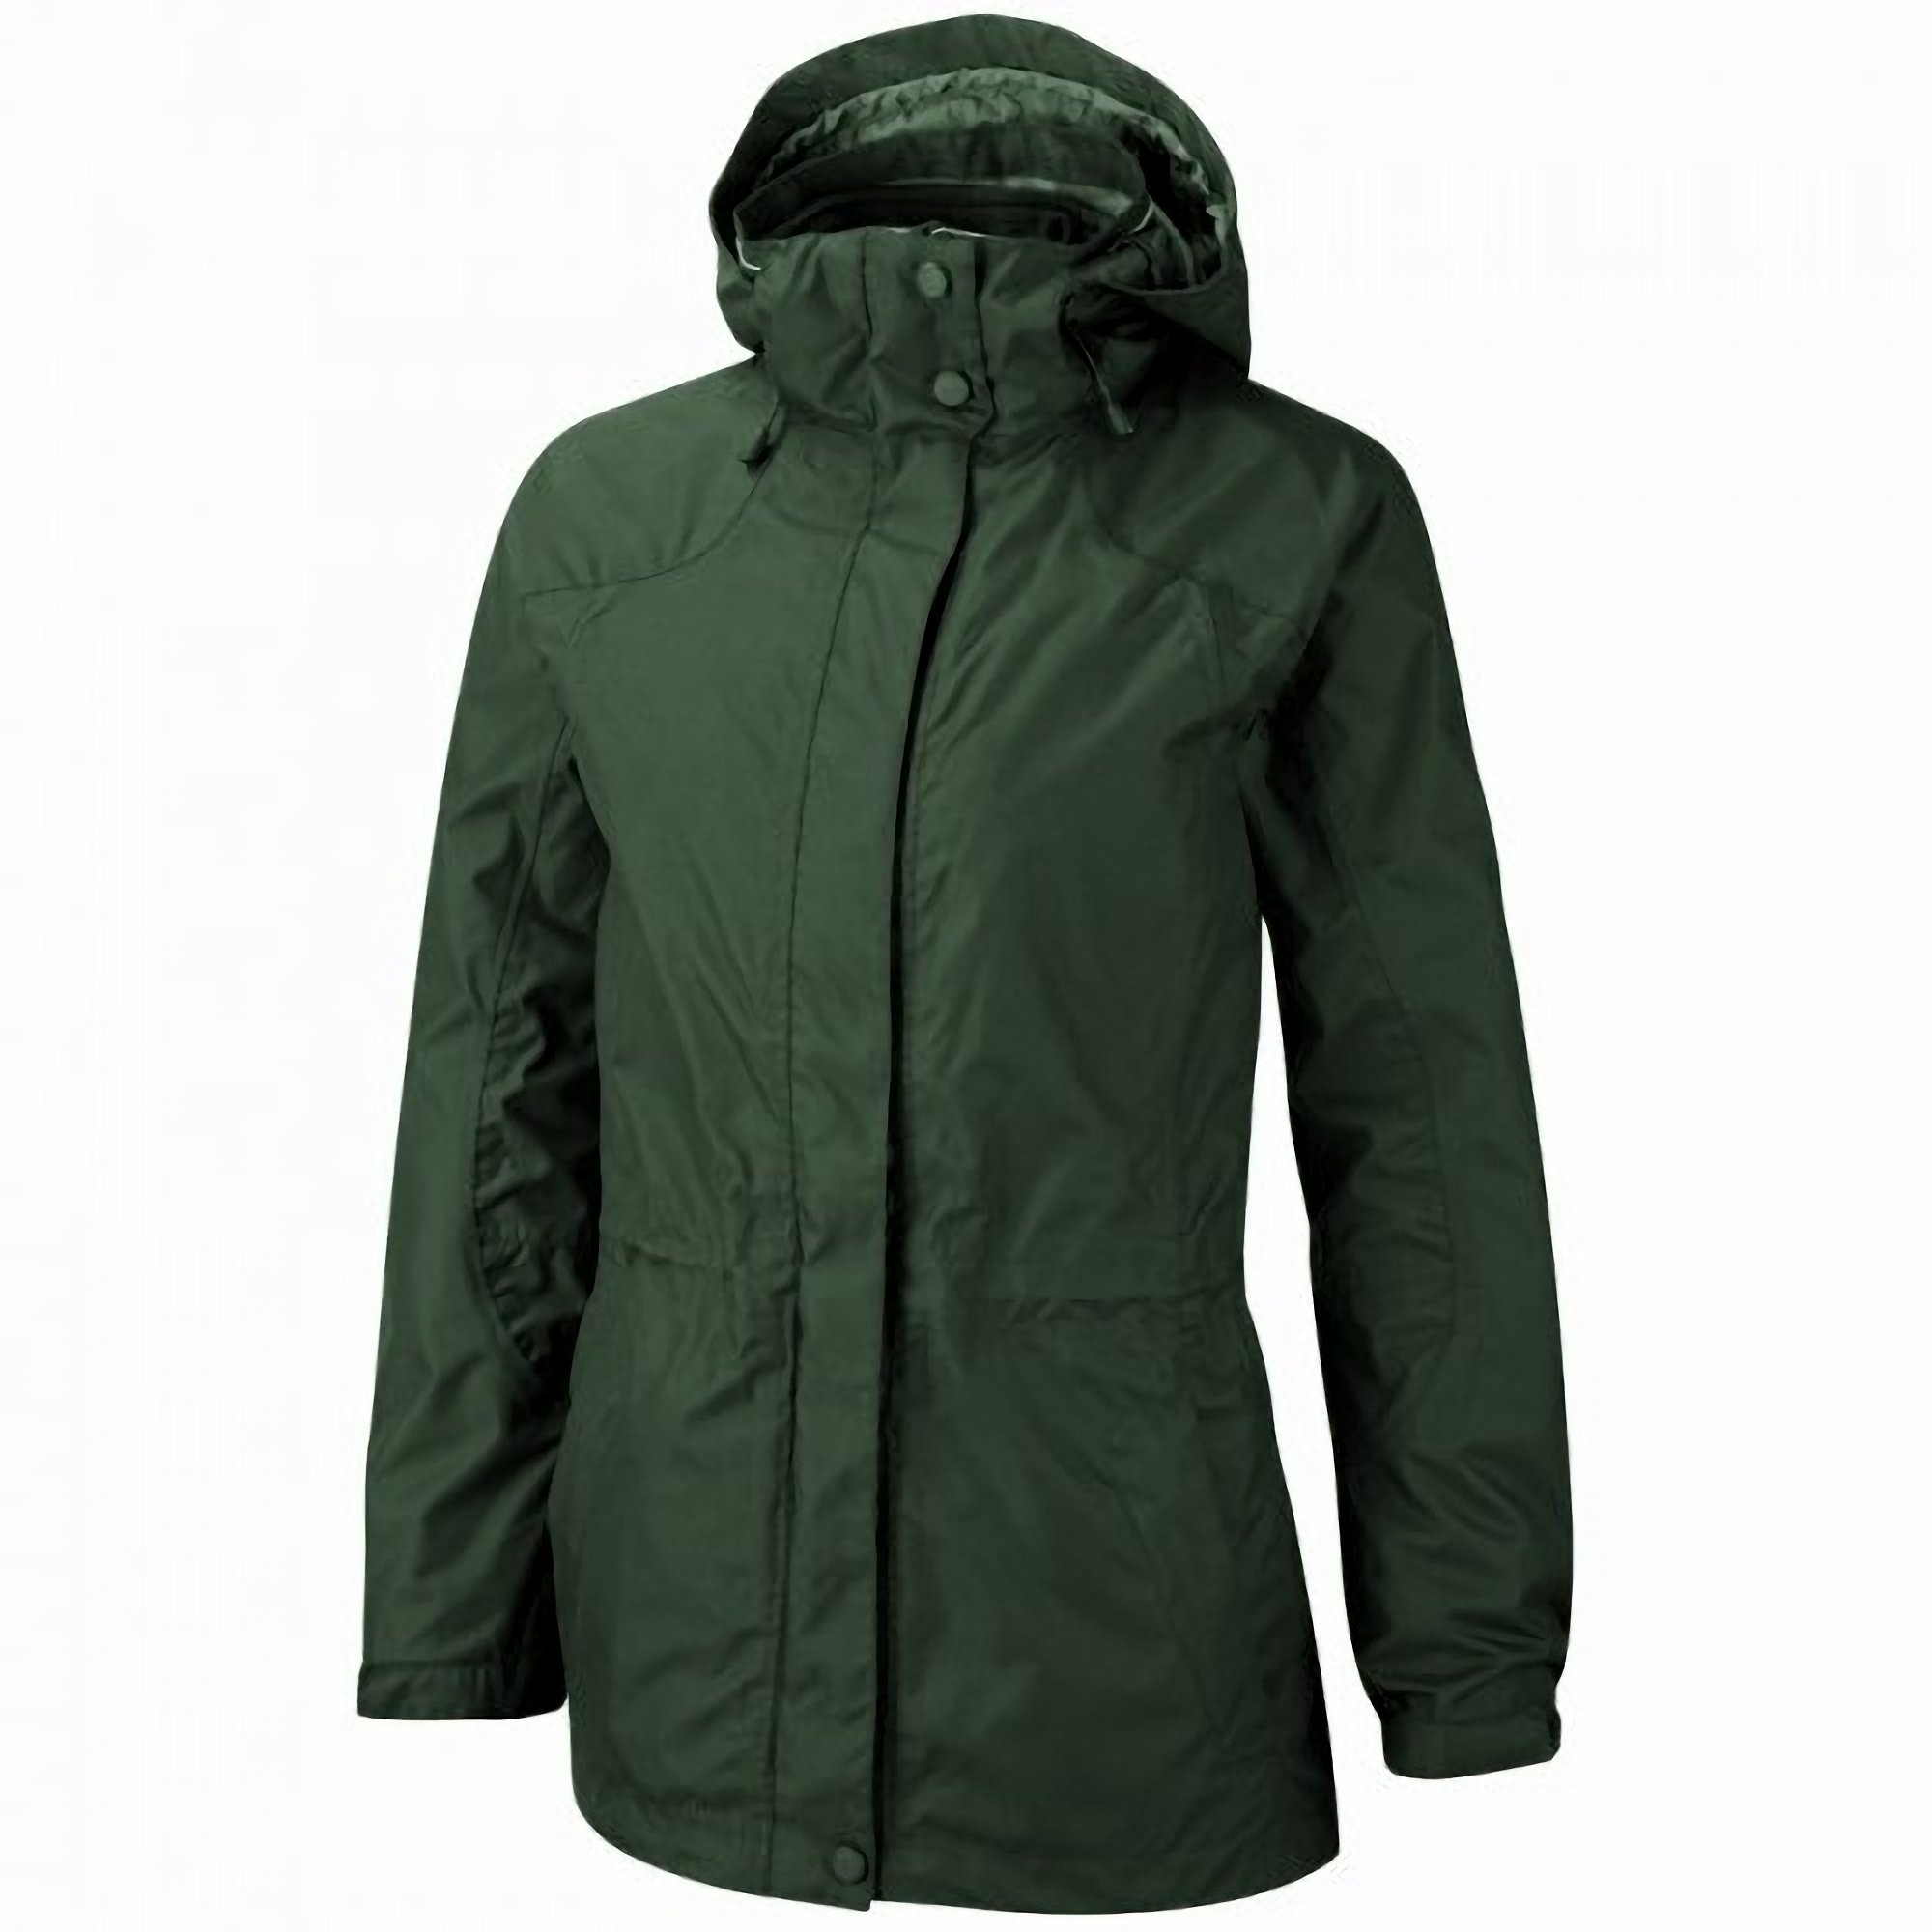 Craghoppers-Womens-Ladies-Lined-Madigan-3-In-1-Performance-Jacket